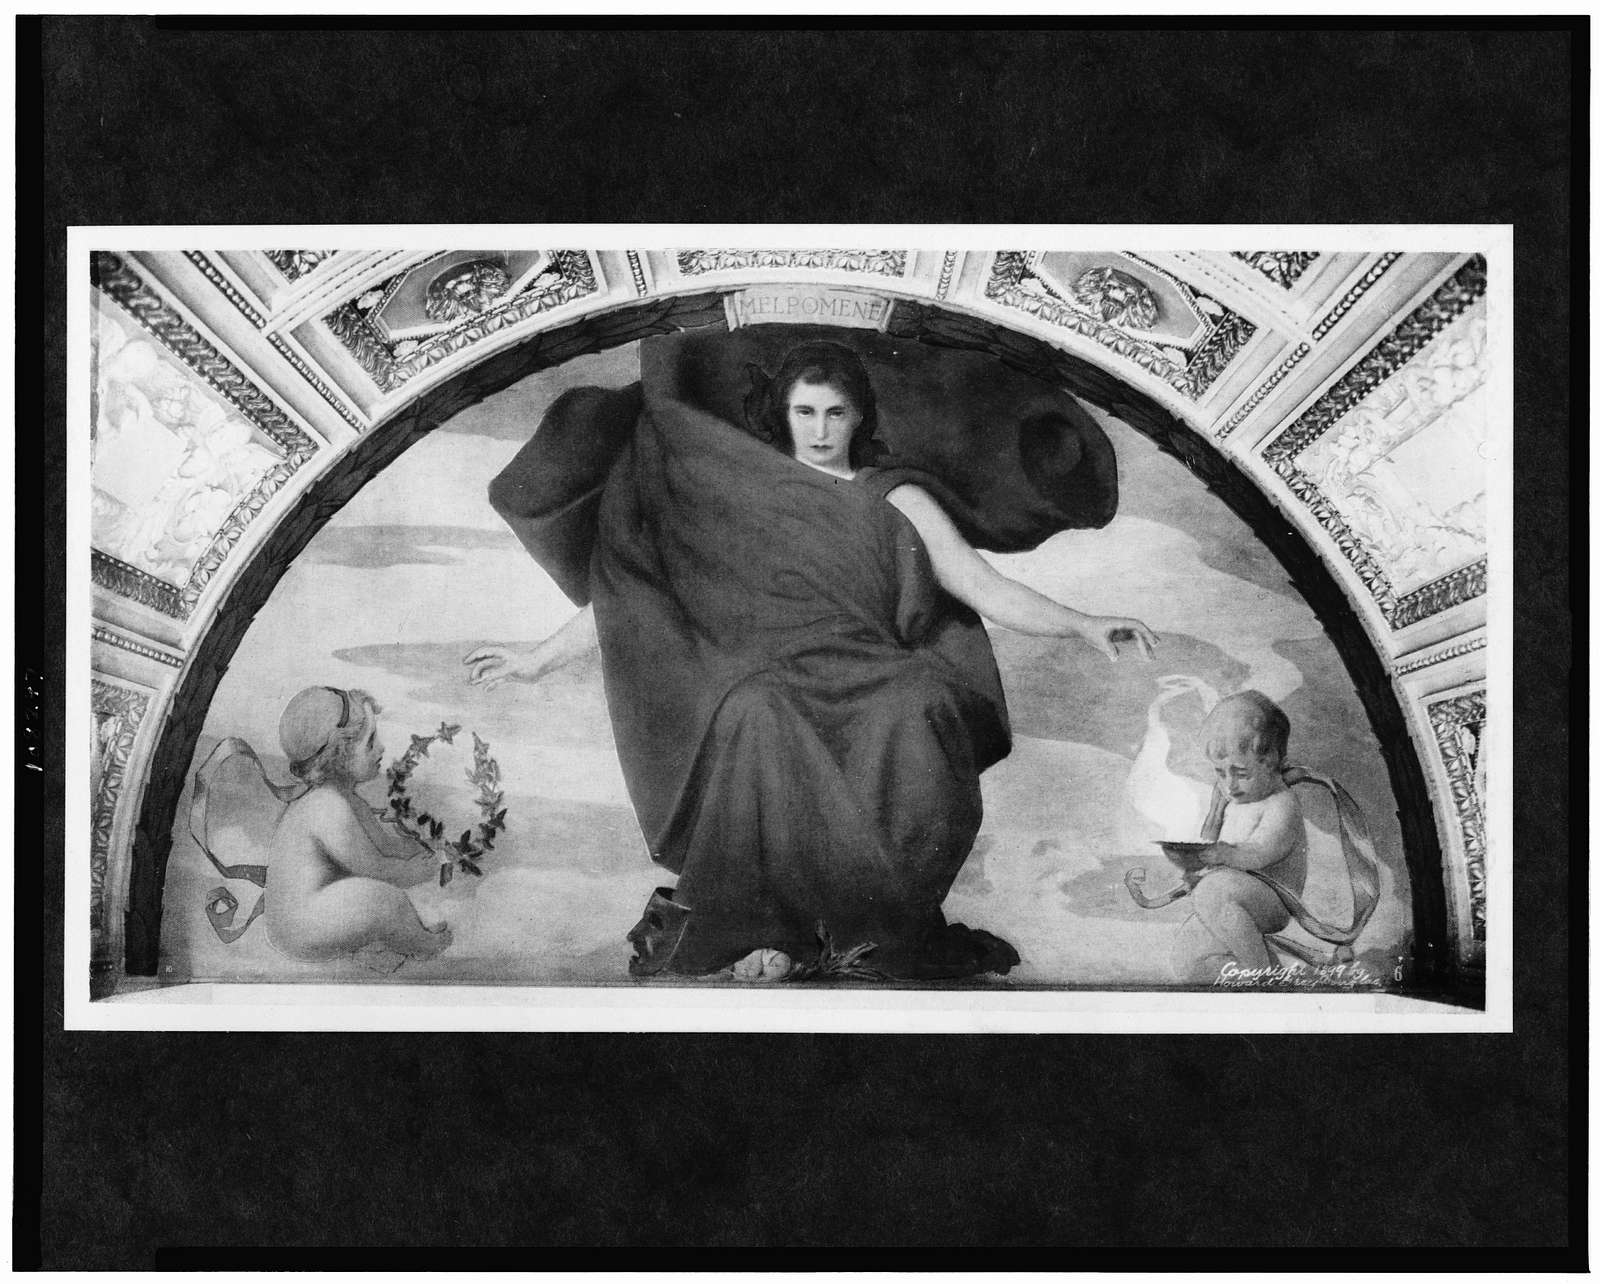 [Mural, Melpomene, woman draped in red cloth, with two cherubs at her sides, in Library of Congress]